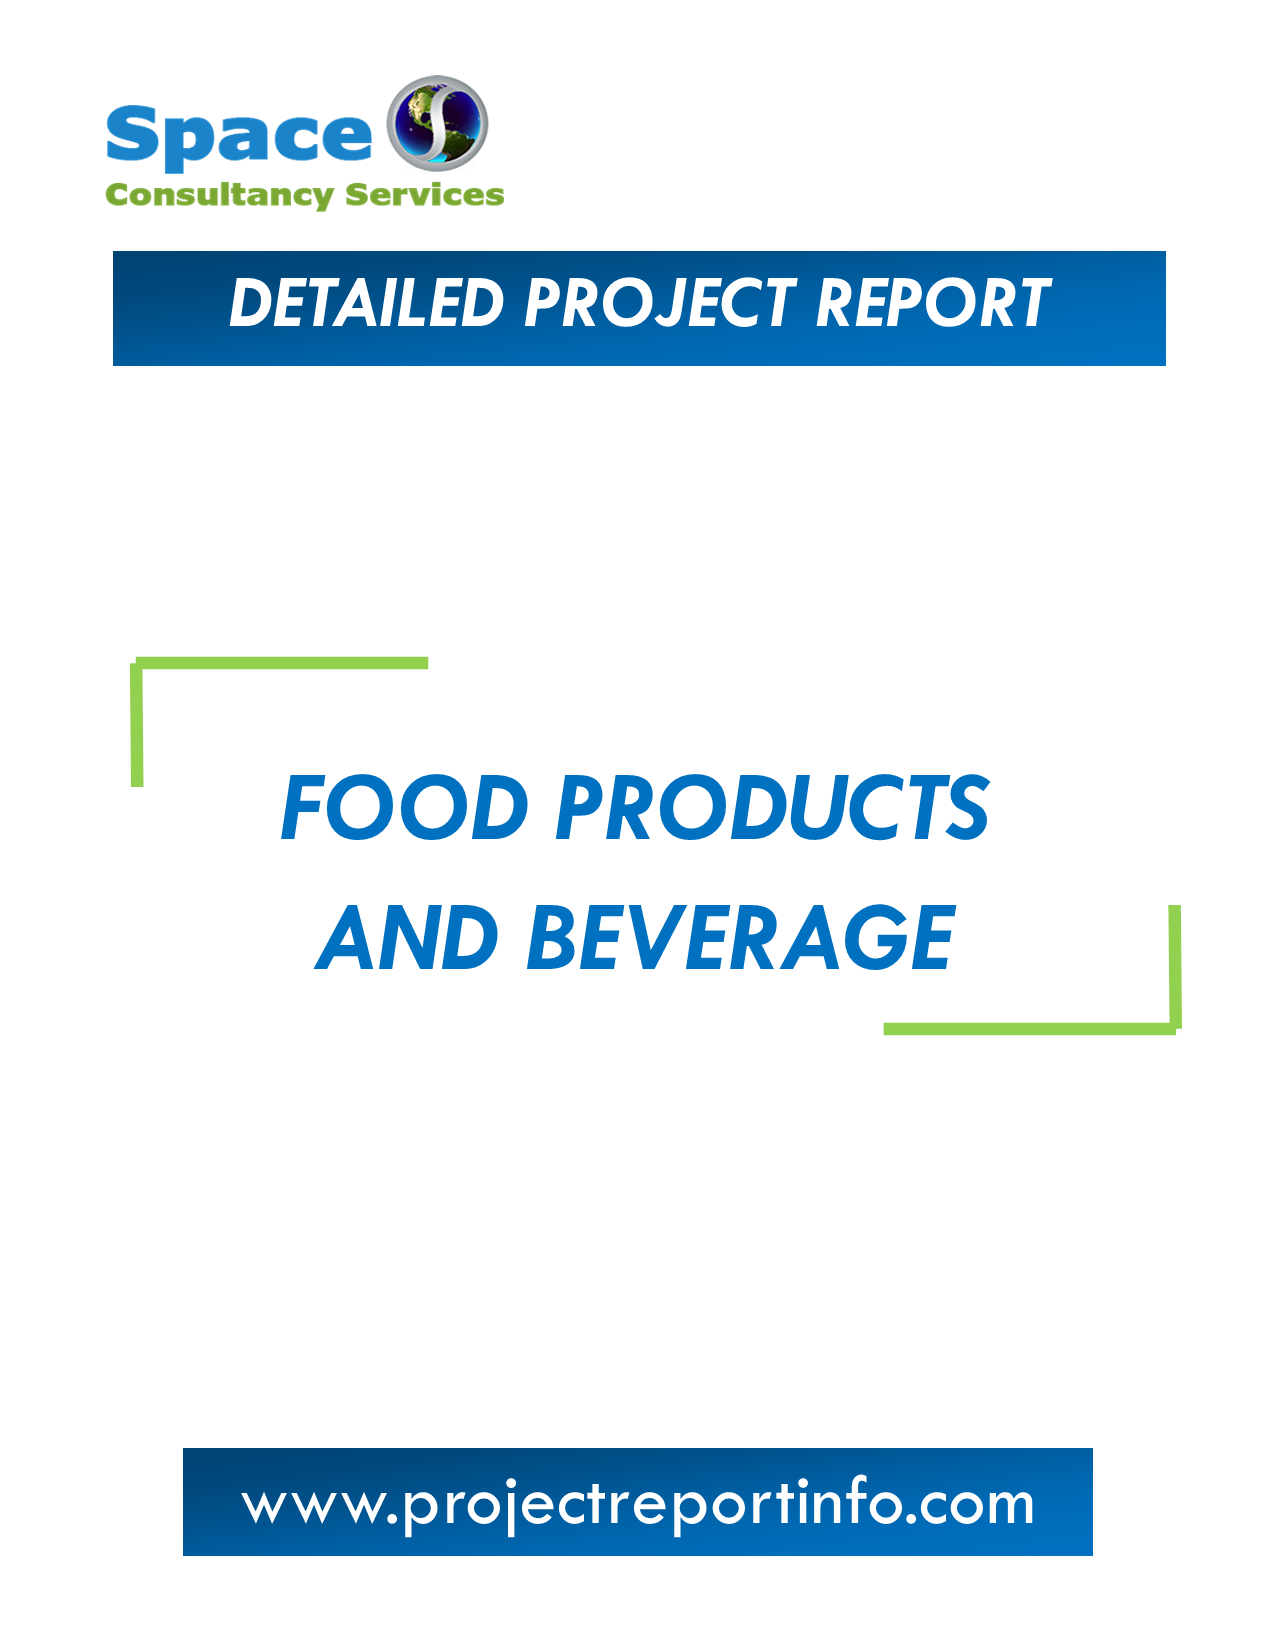 Food Products and Beverage